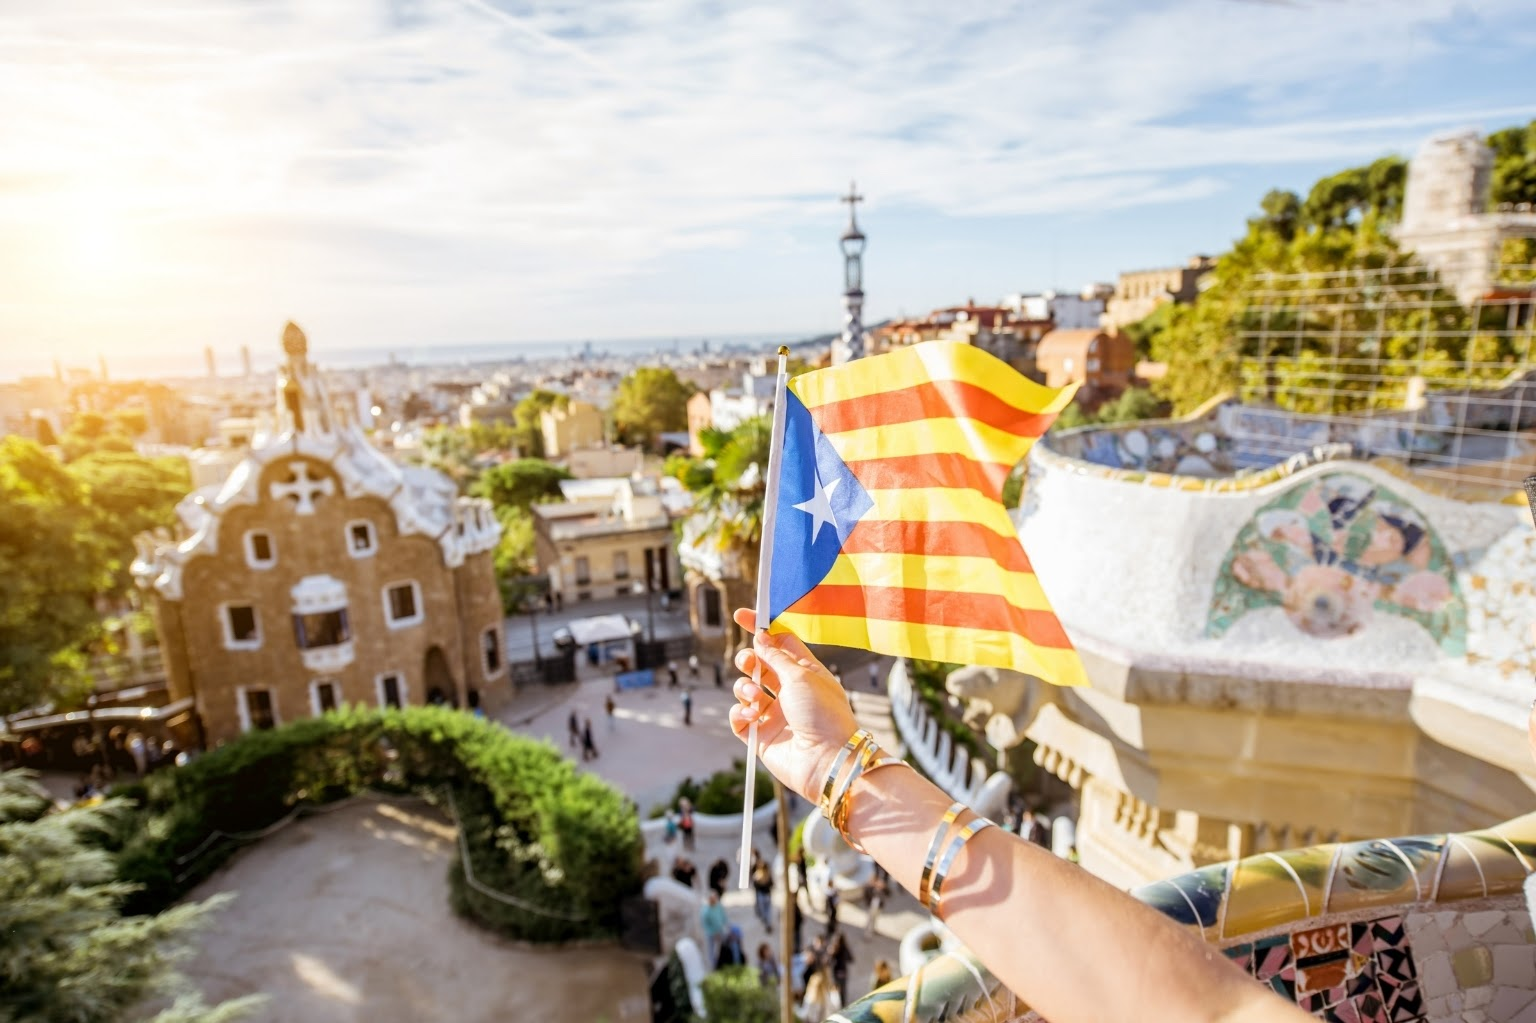 Catalan is not a dialect, it is an official language